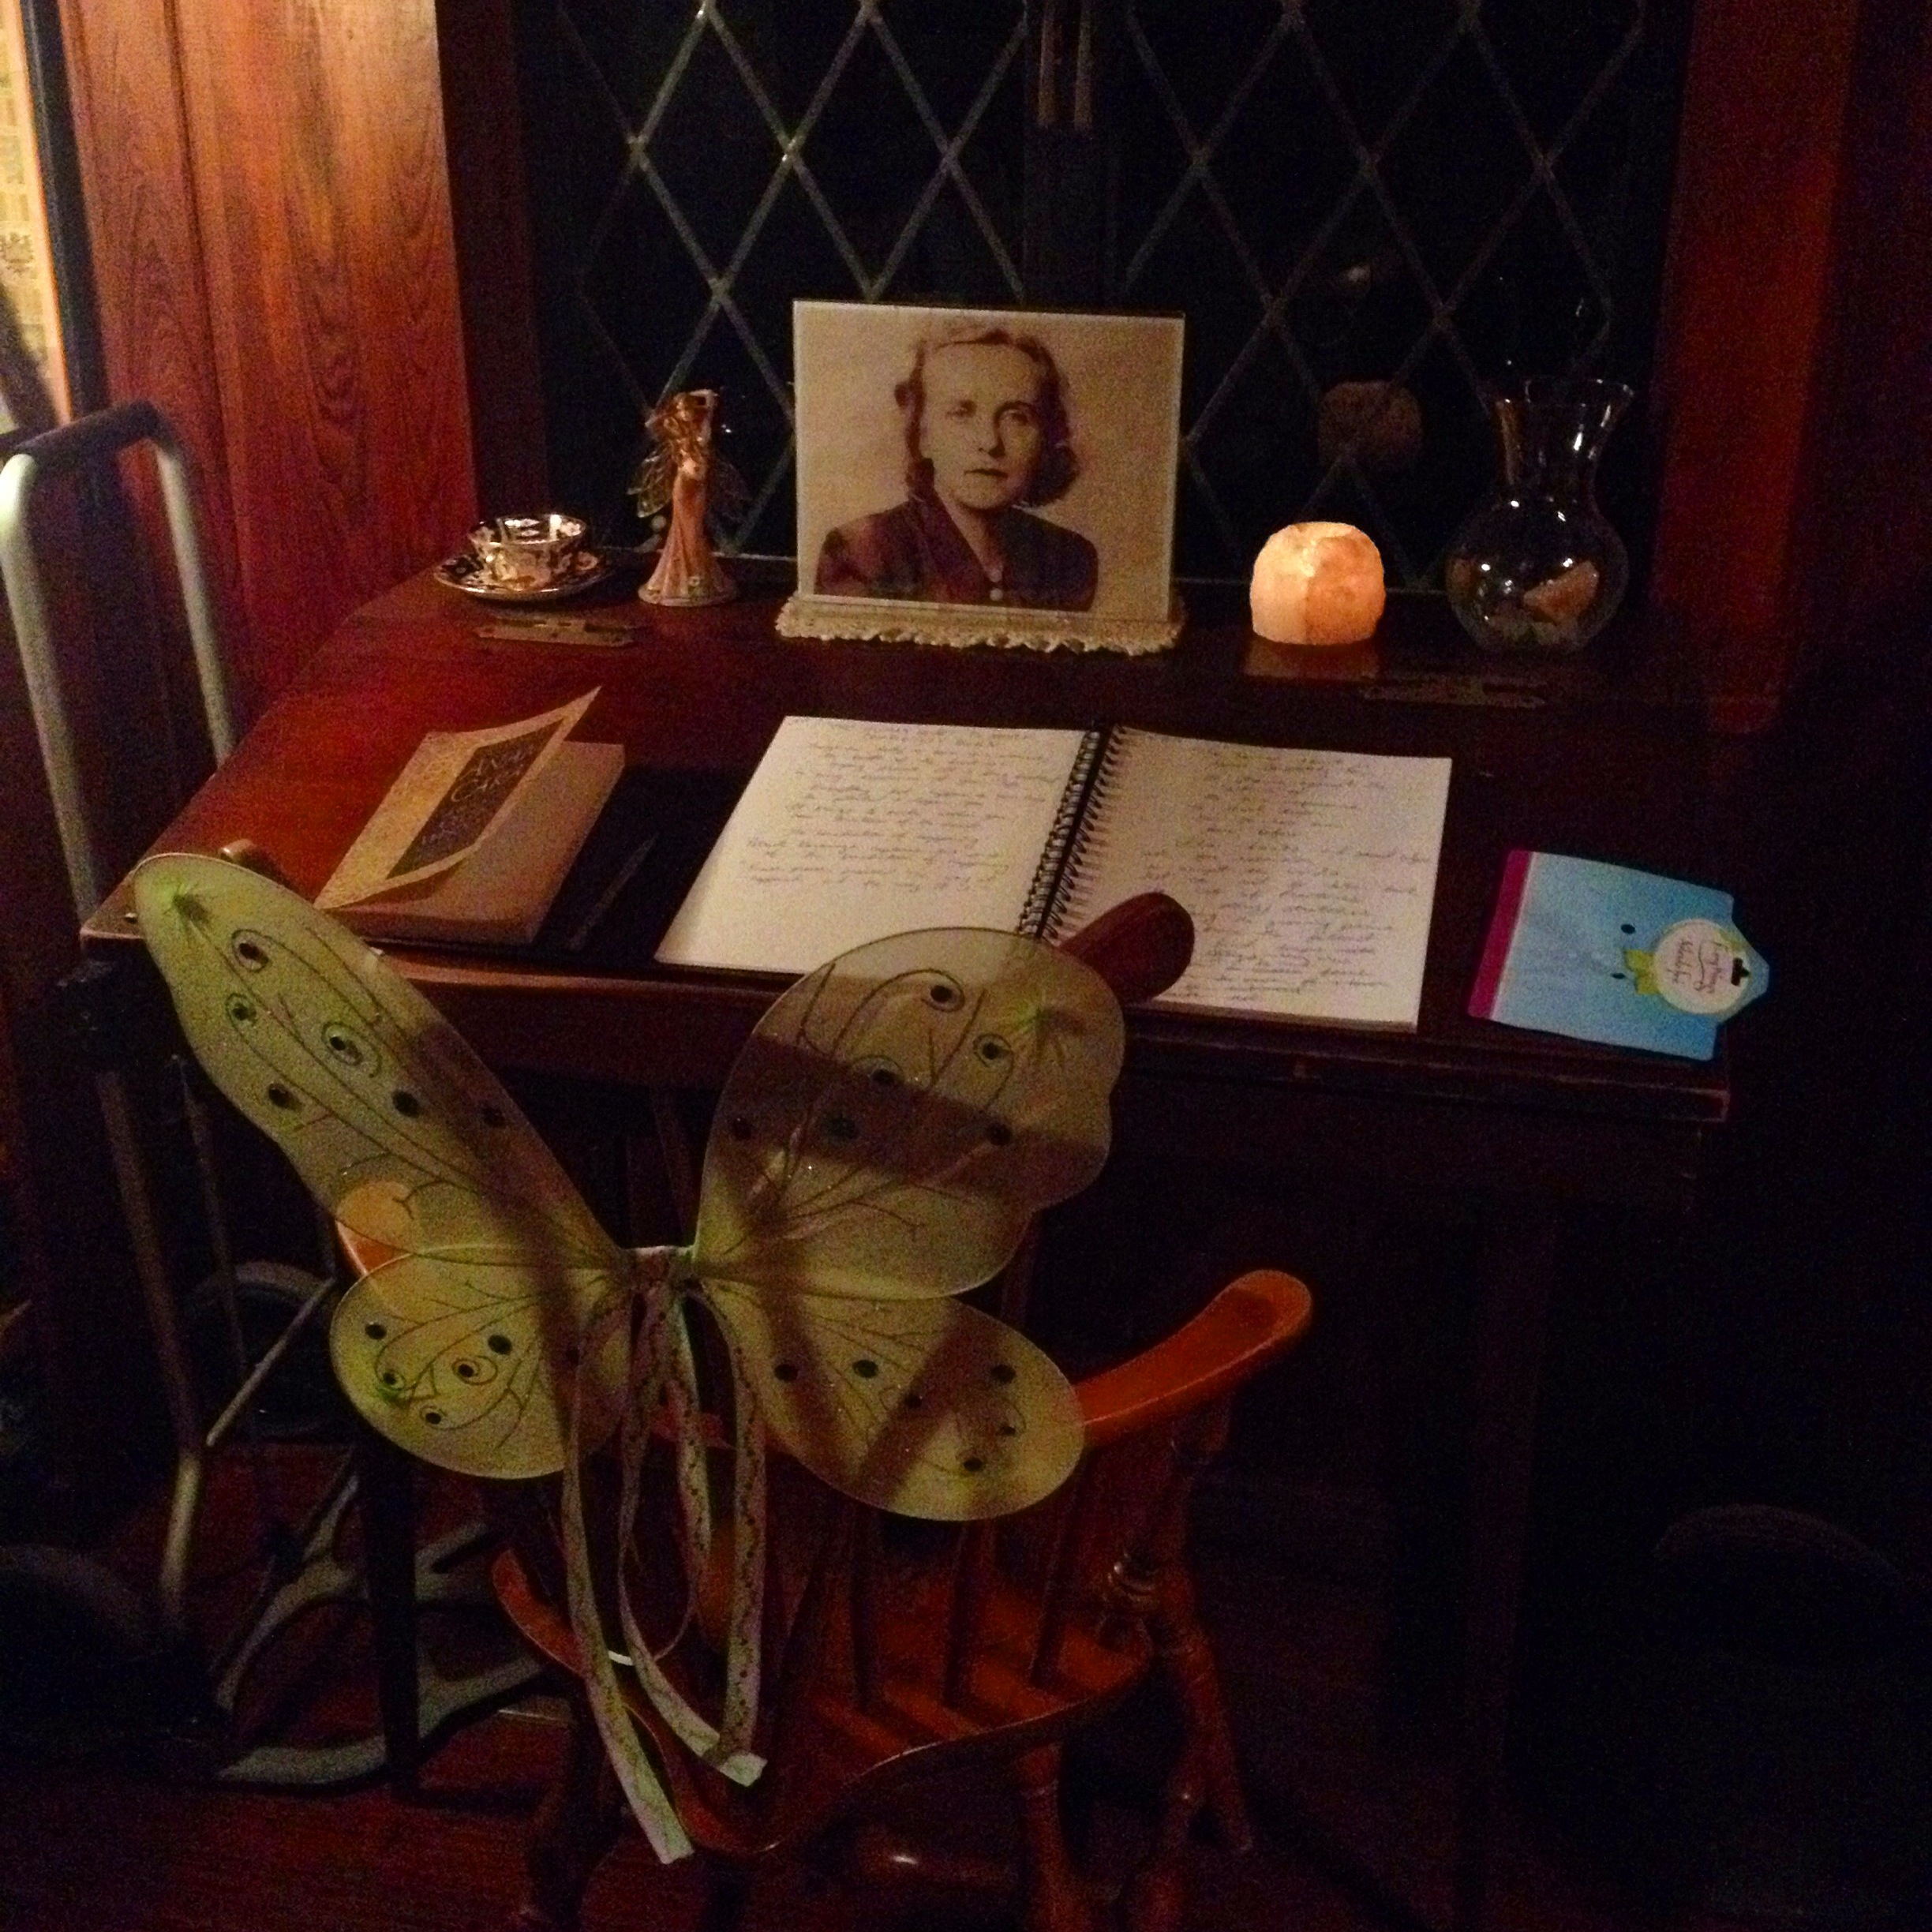 It was a treasure getting to write at Laura Jepsen's writing desk. She was quite the scholar and writer, and her work as an English Professor at Florida State University had a profound effect on her students who banded together to save the Lichgate from development after her passing.